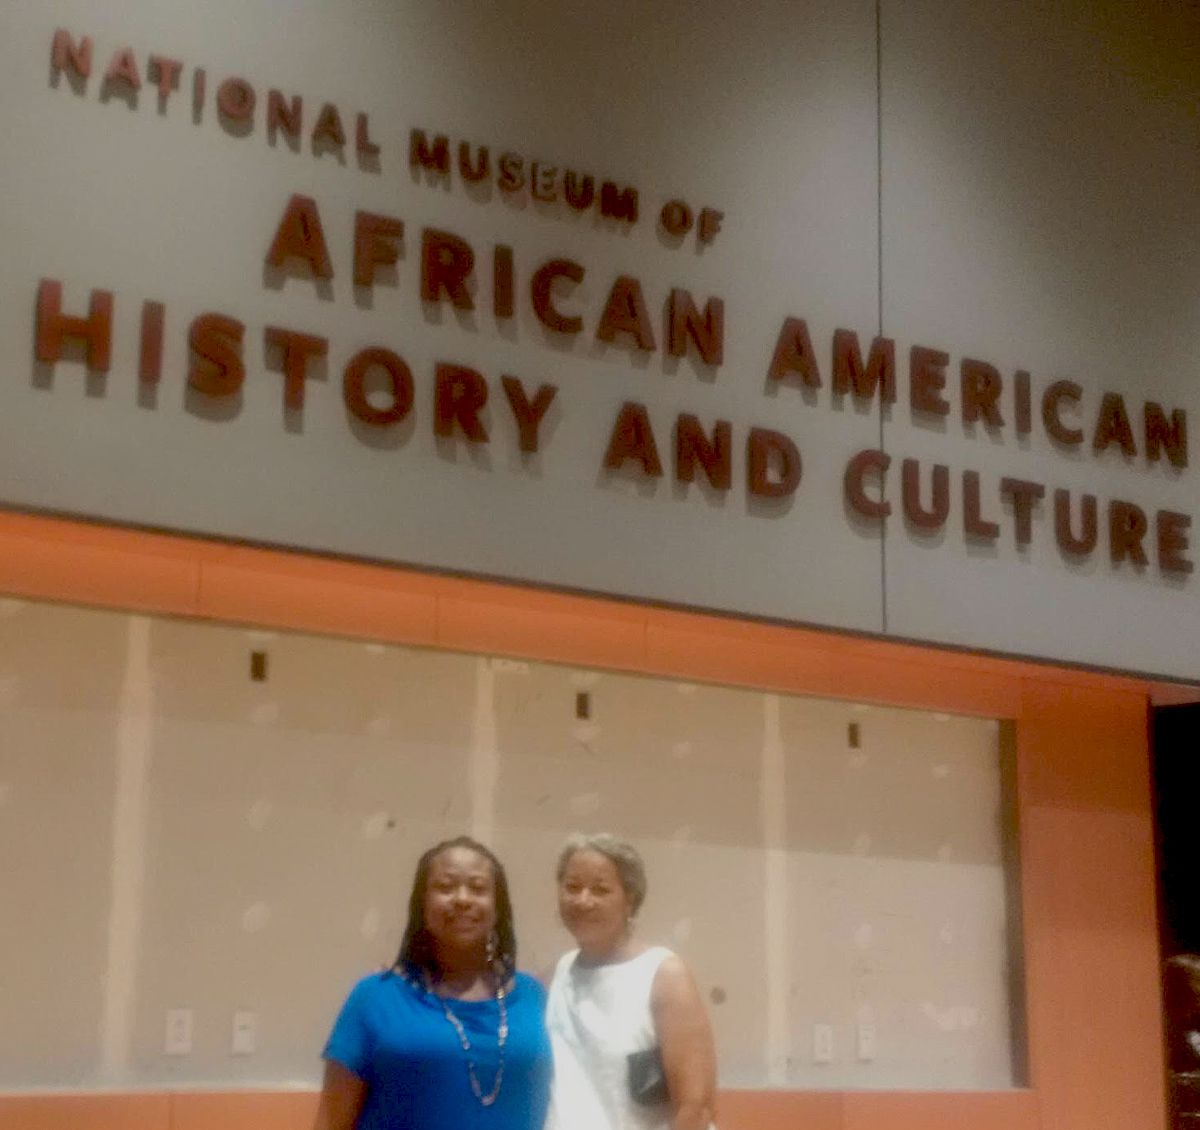 Sun-Times reporter Maudlyne Ihejirika and friend Shawn Goldstein were among a group of visitors who got a look at the yet-to-be opened National Museum of African American History and Culture last month.